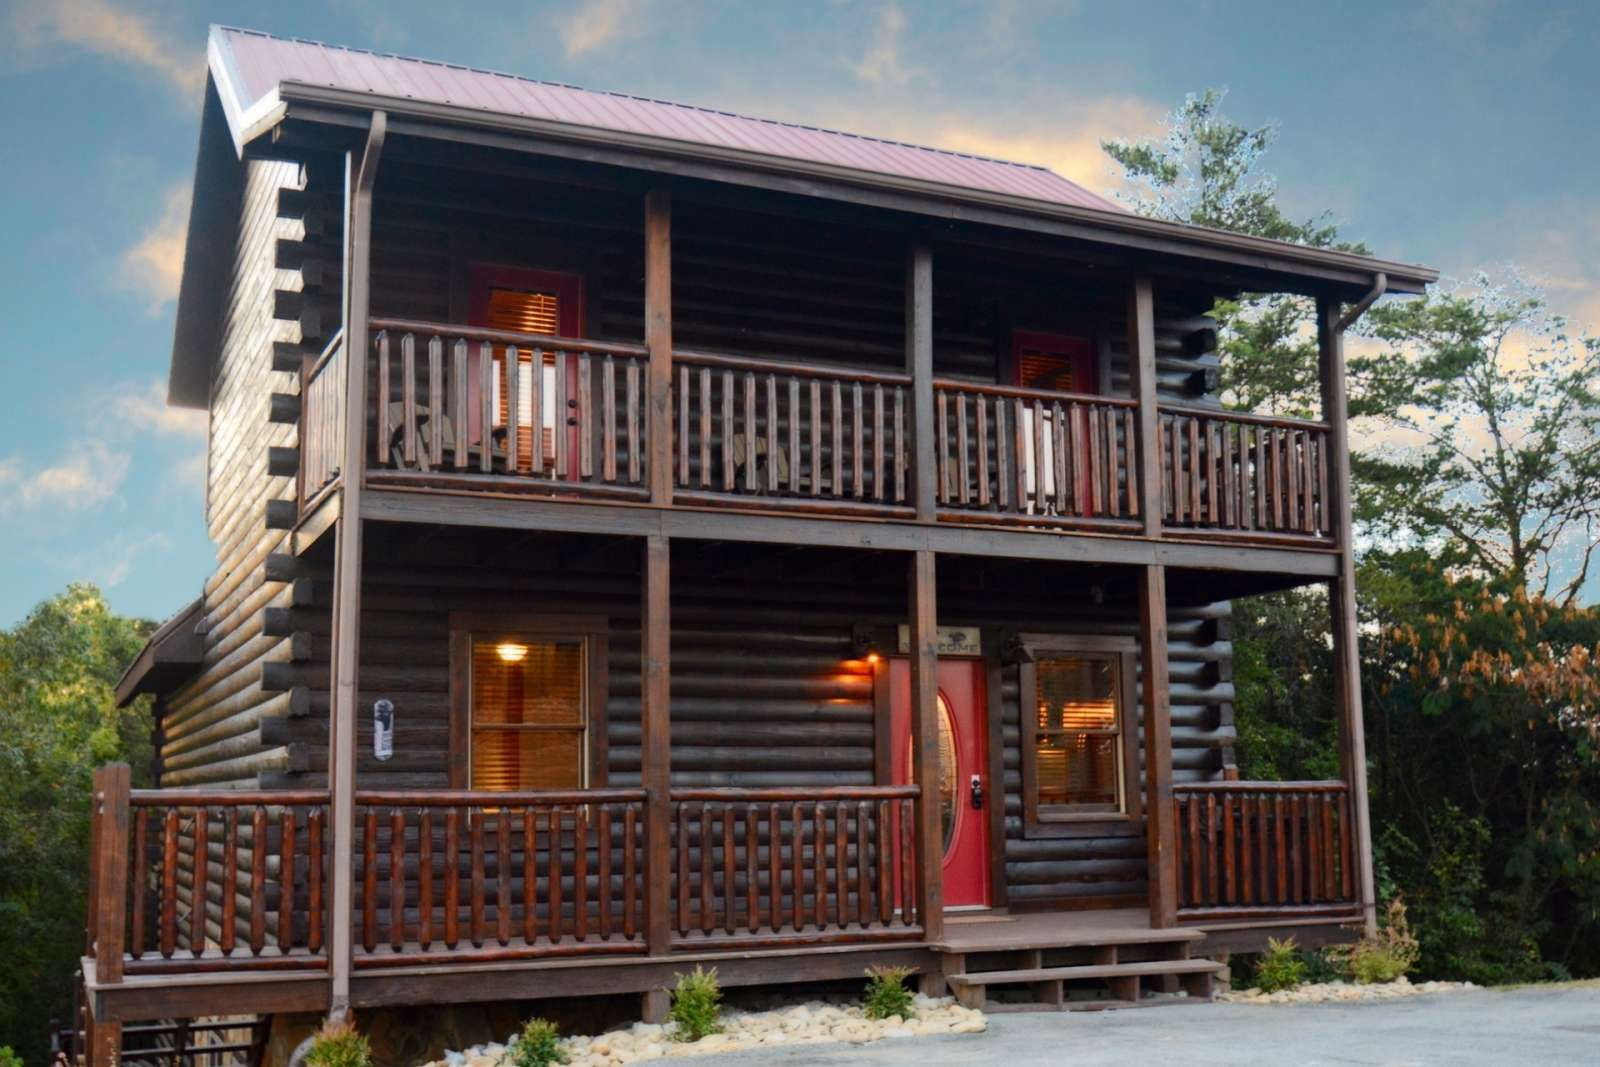 named gatlinburg the with hole w cabin pool of fifth rental a outdoor this private br photo in twenty rentals cabins is